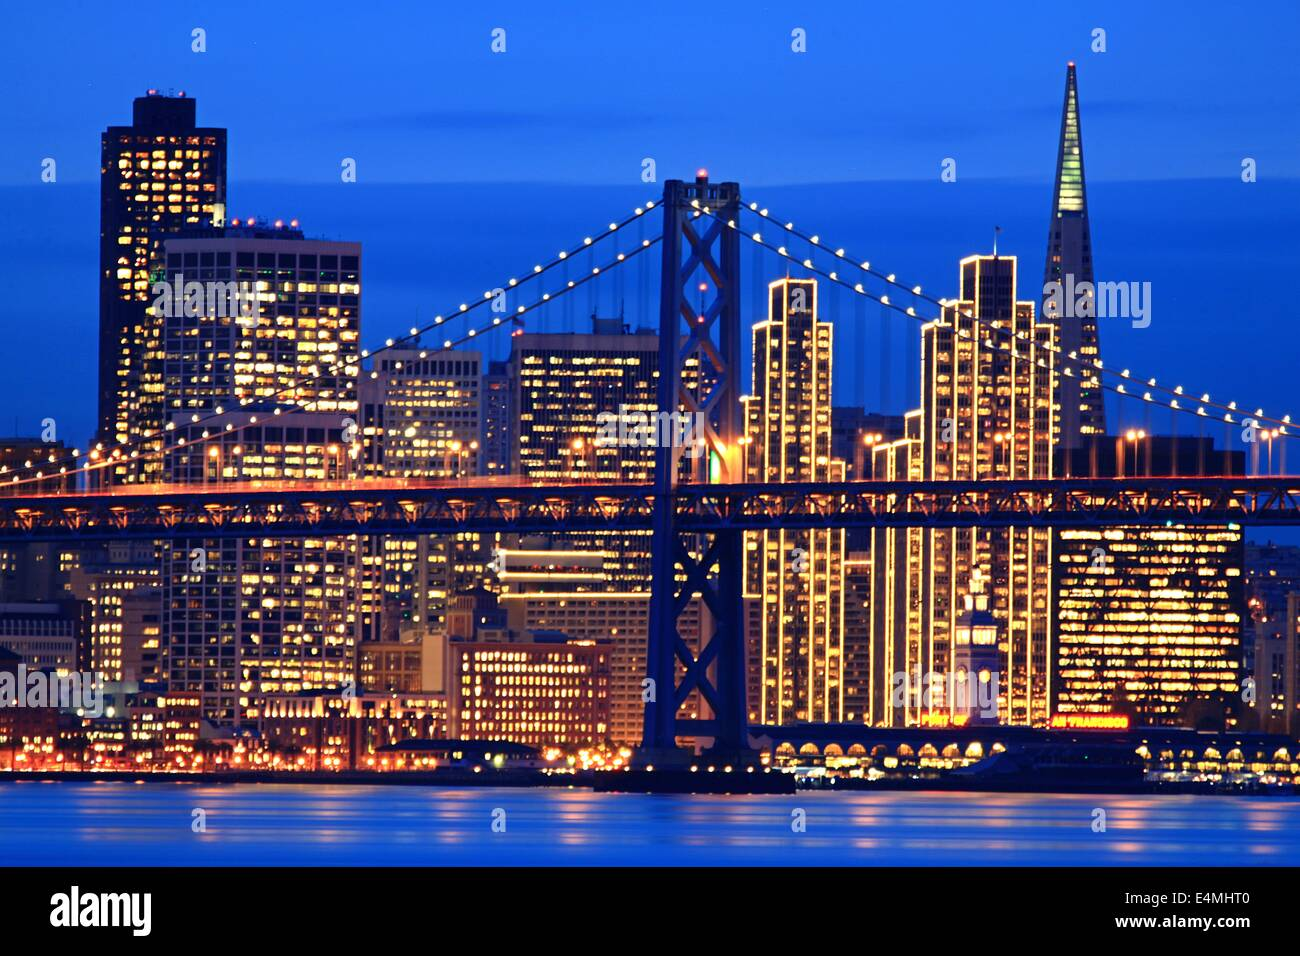 San Francisco City Skyline With Holiday Lights On At Night And The Bay  Bridge Nice Look